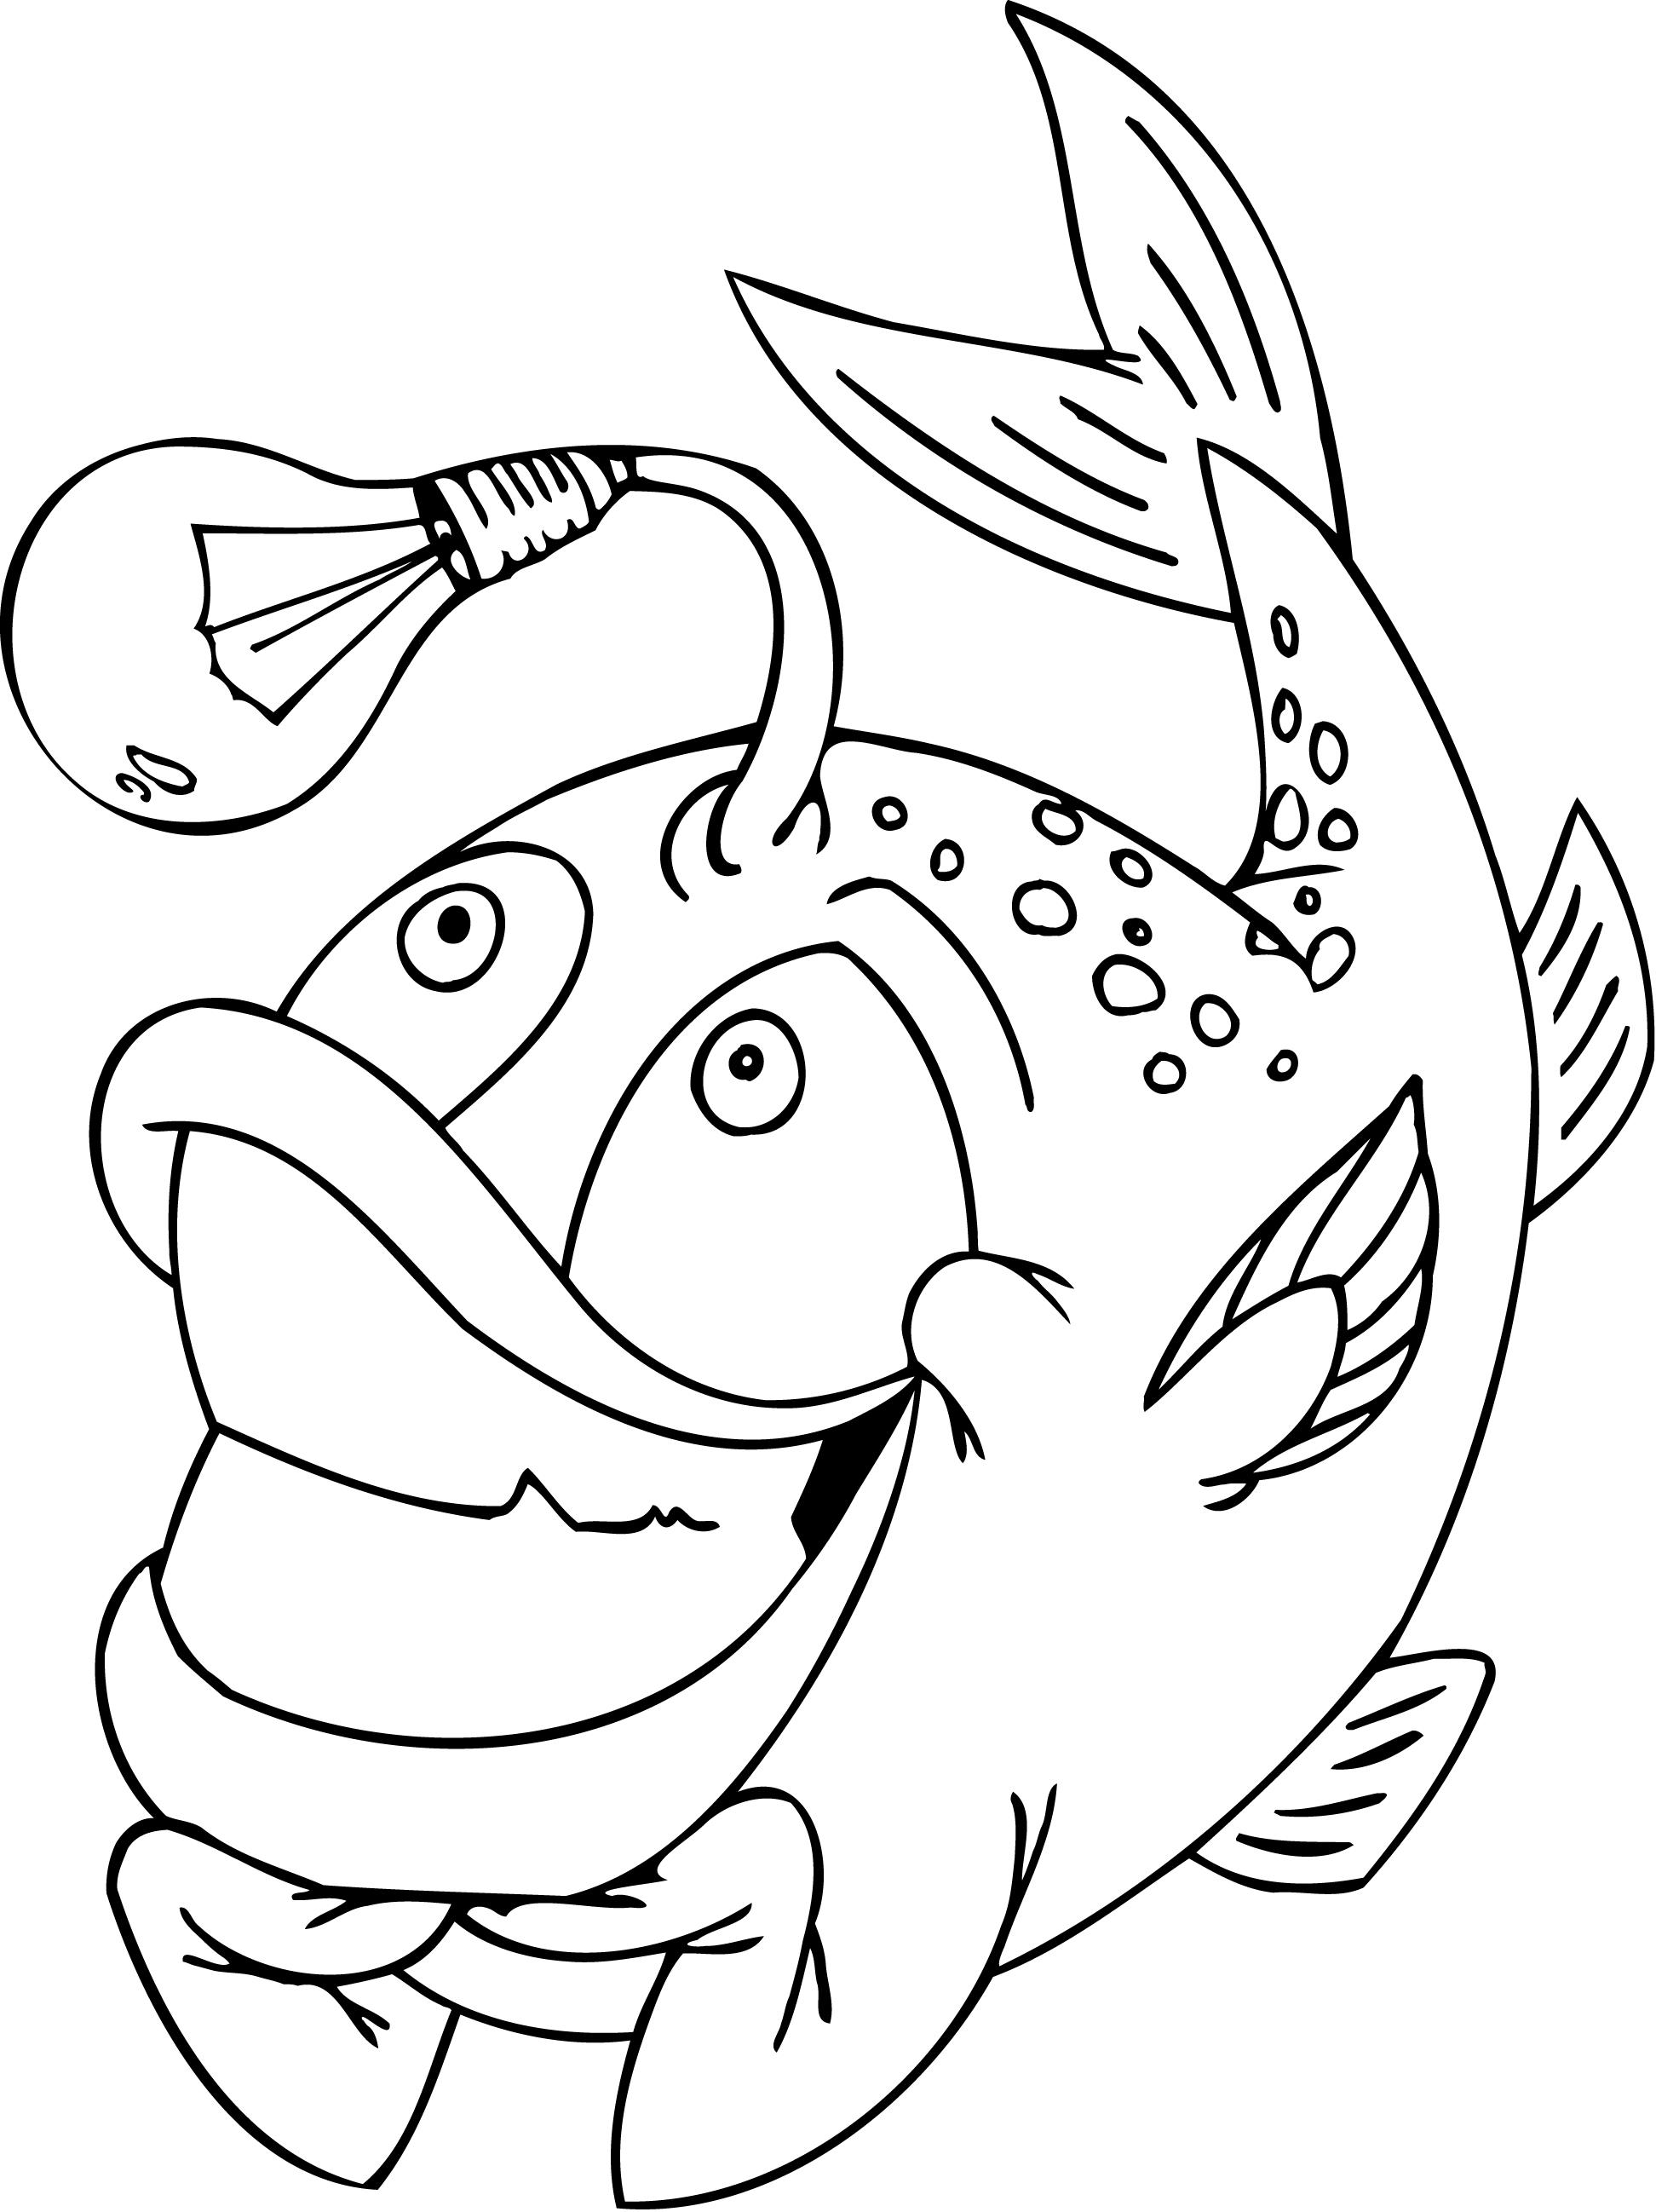 Fish Head Drawing At Getdrawings